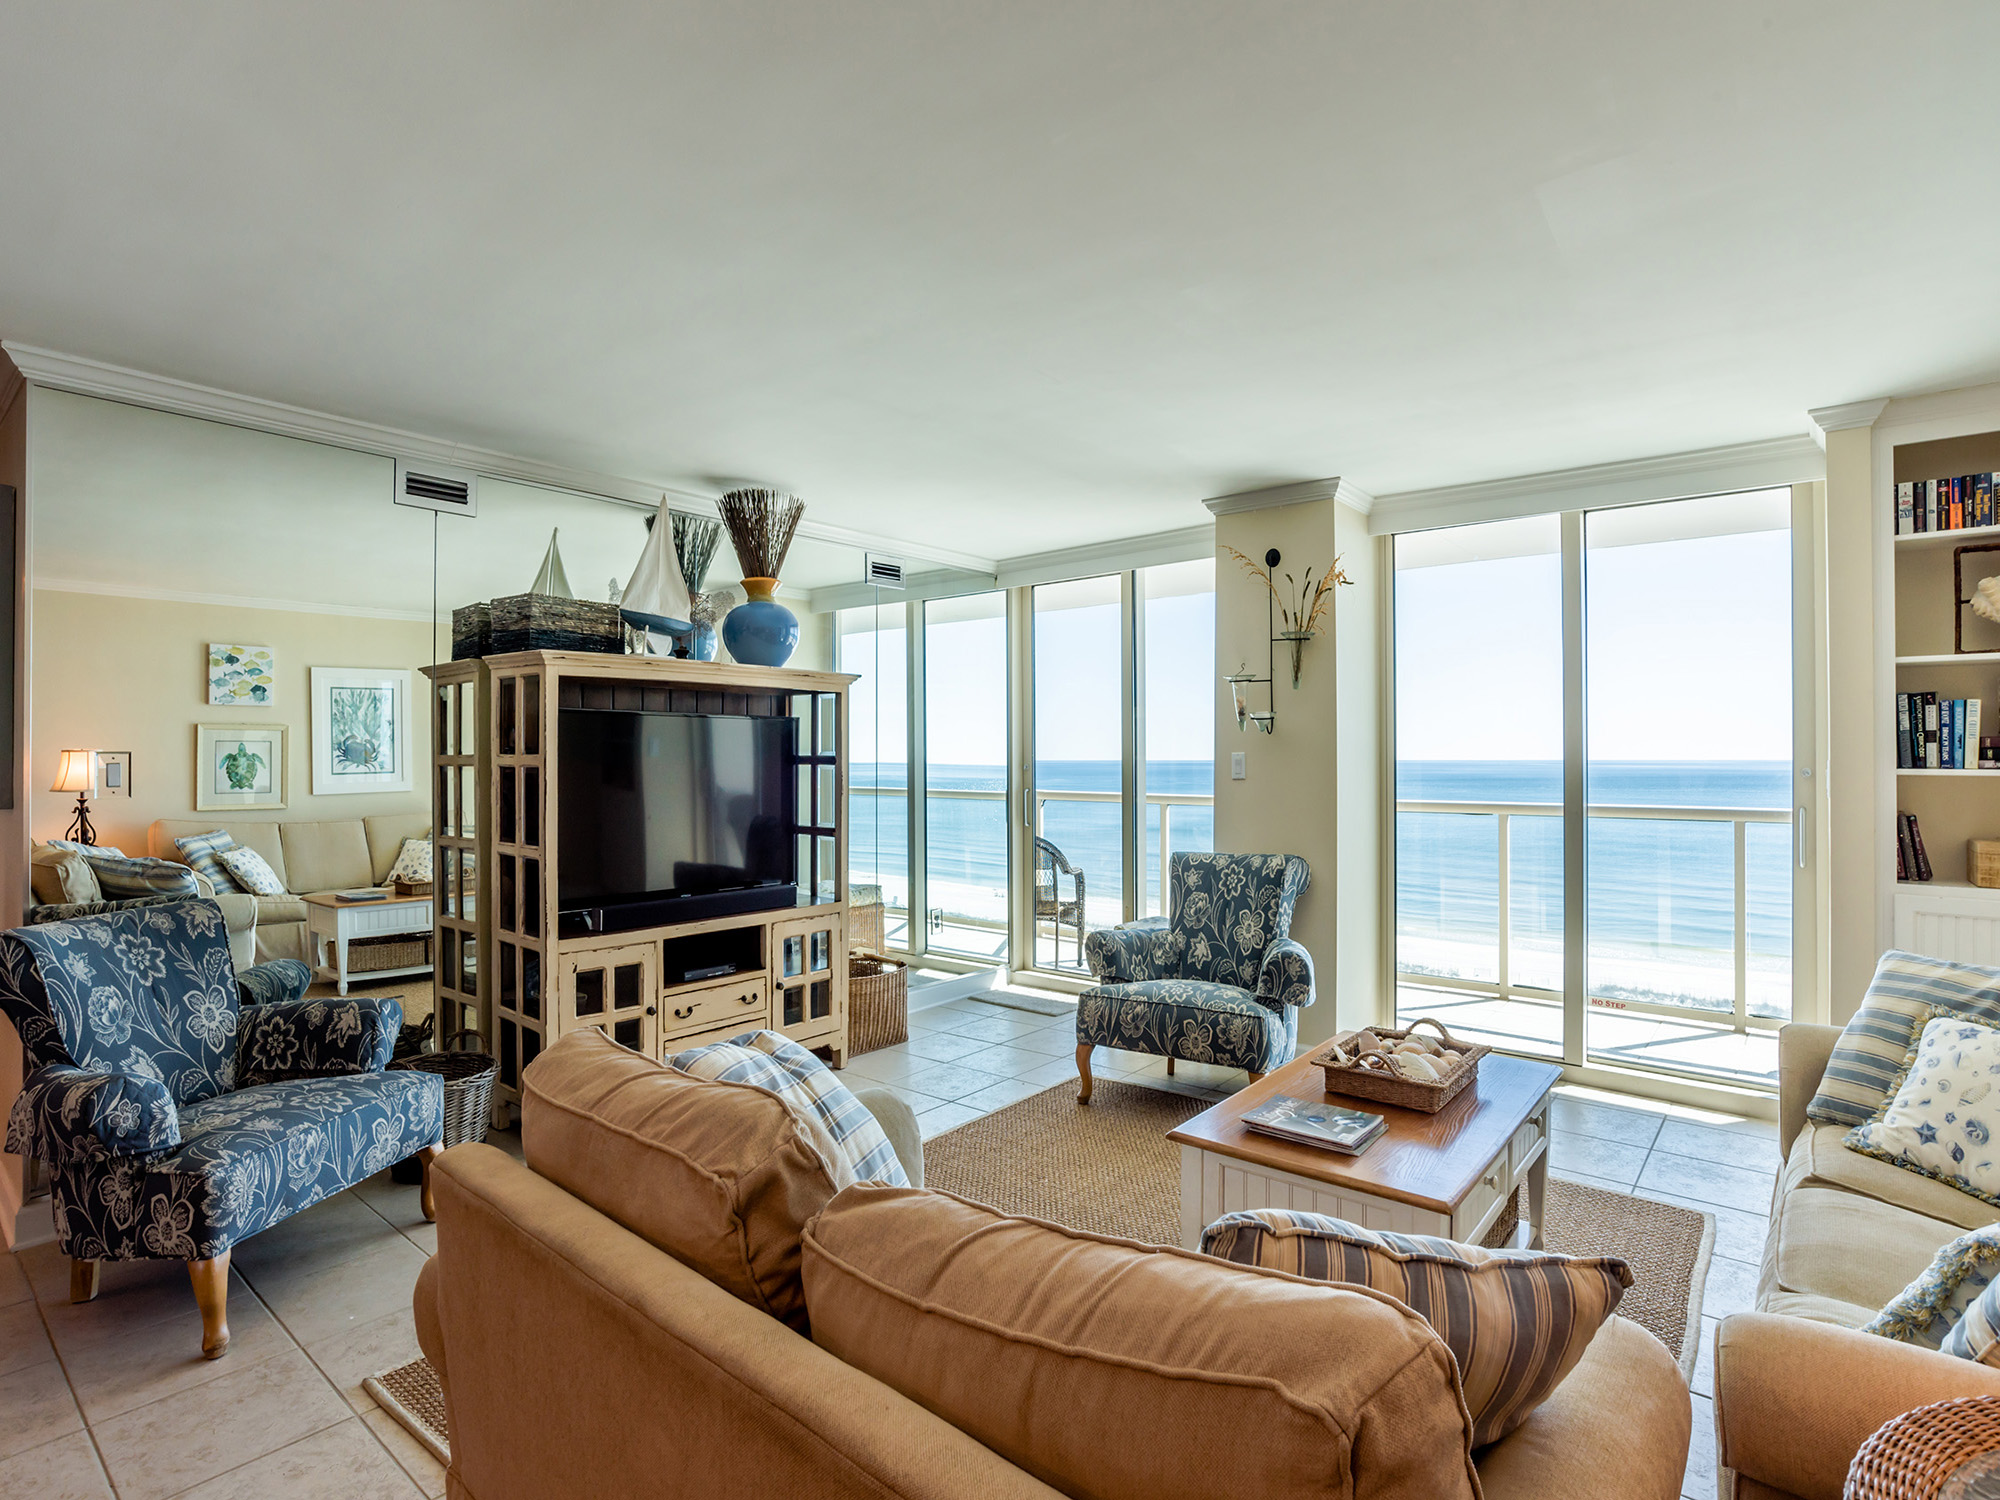 Pensacola Beach beach and bay property with ocean views and boat slip 2 bedrooms sleeps 8